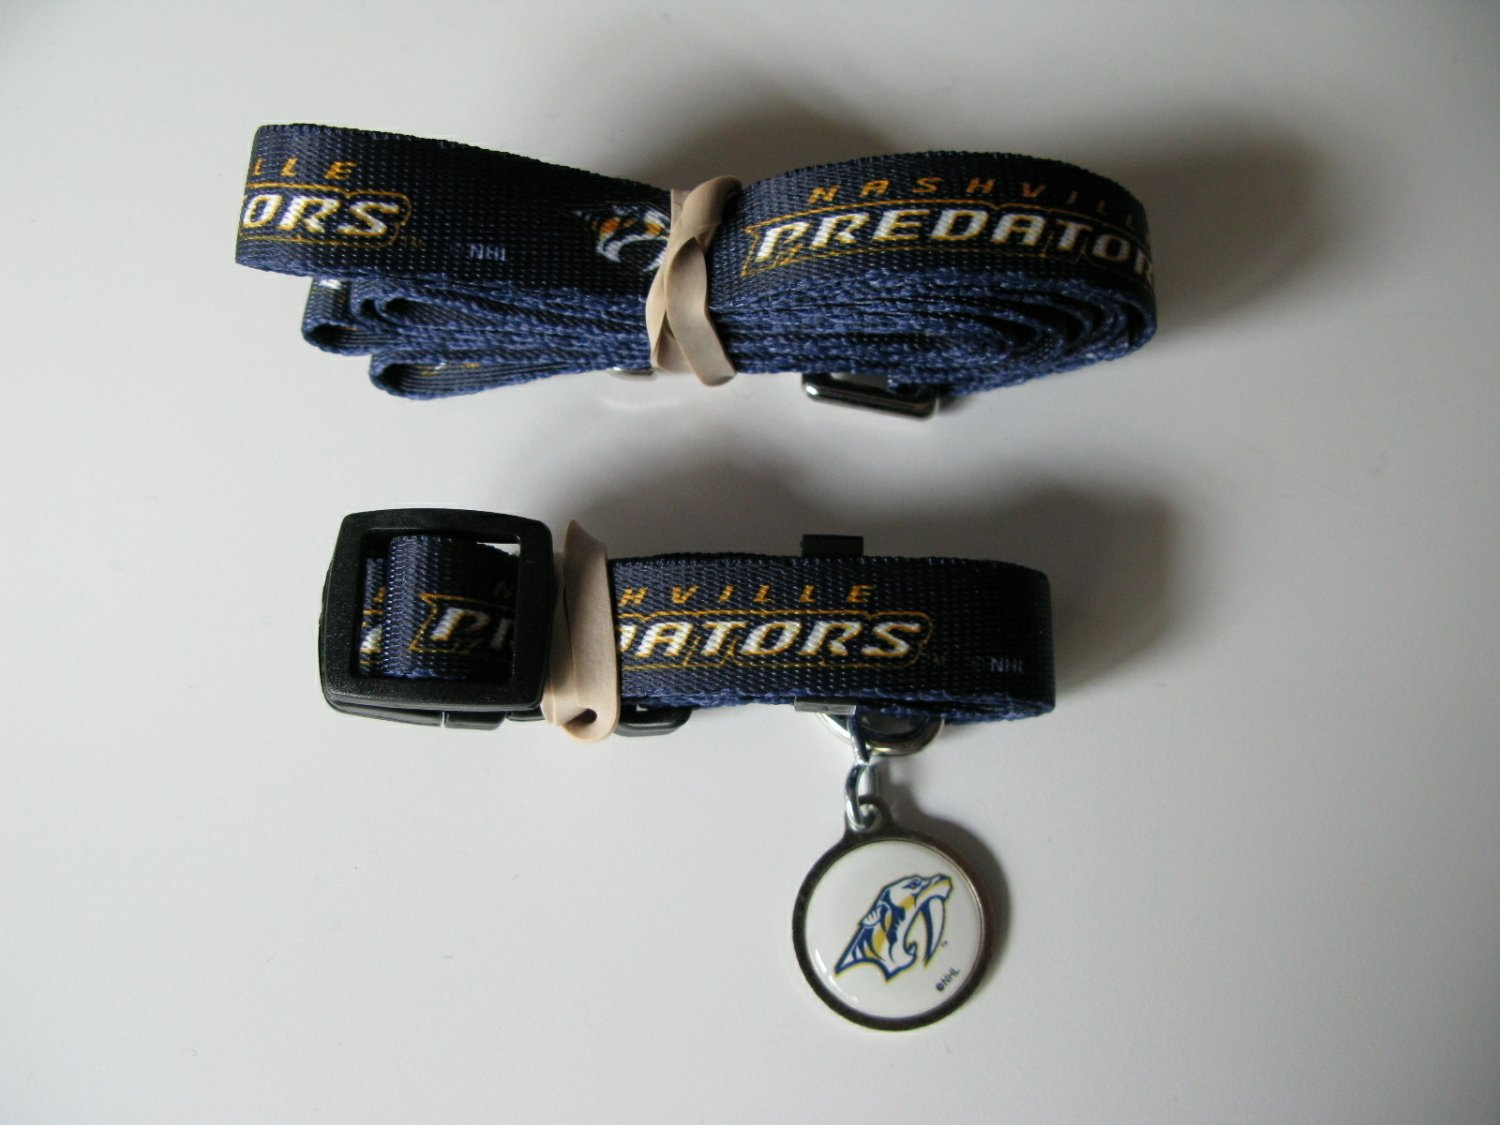 Nashville Predators Pet Dog Leash Set Collar ID Tag Gift Size Small